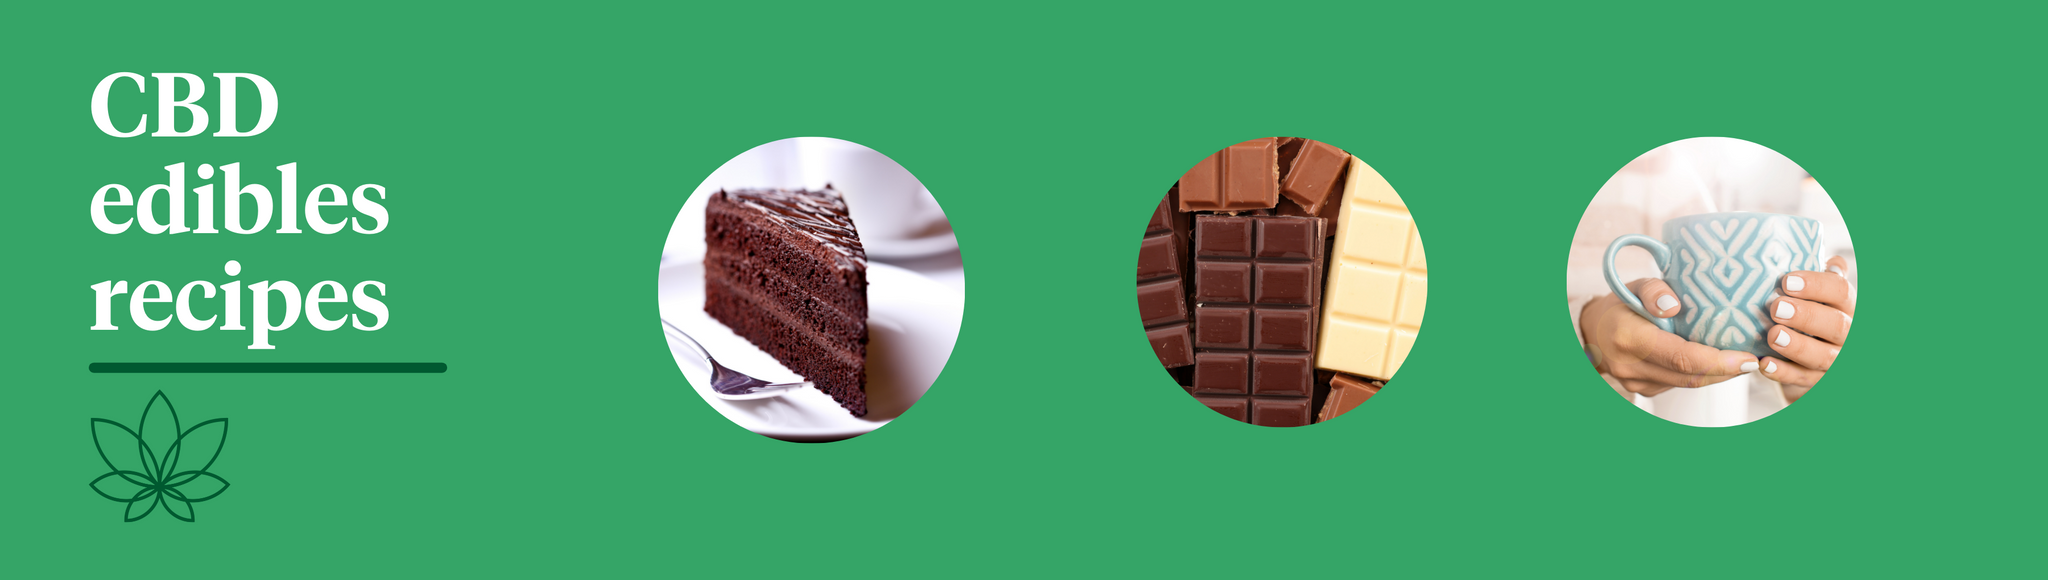 A green background with the Supreme CBD logo showcasing CBD edibles recipes. One image showcasing a chocolate cake, the other shows multiple chocolate bars, one of milk chocolate, two showing dark and a bar of white chocolate. the final image shows a cup of tea.